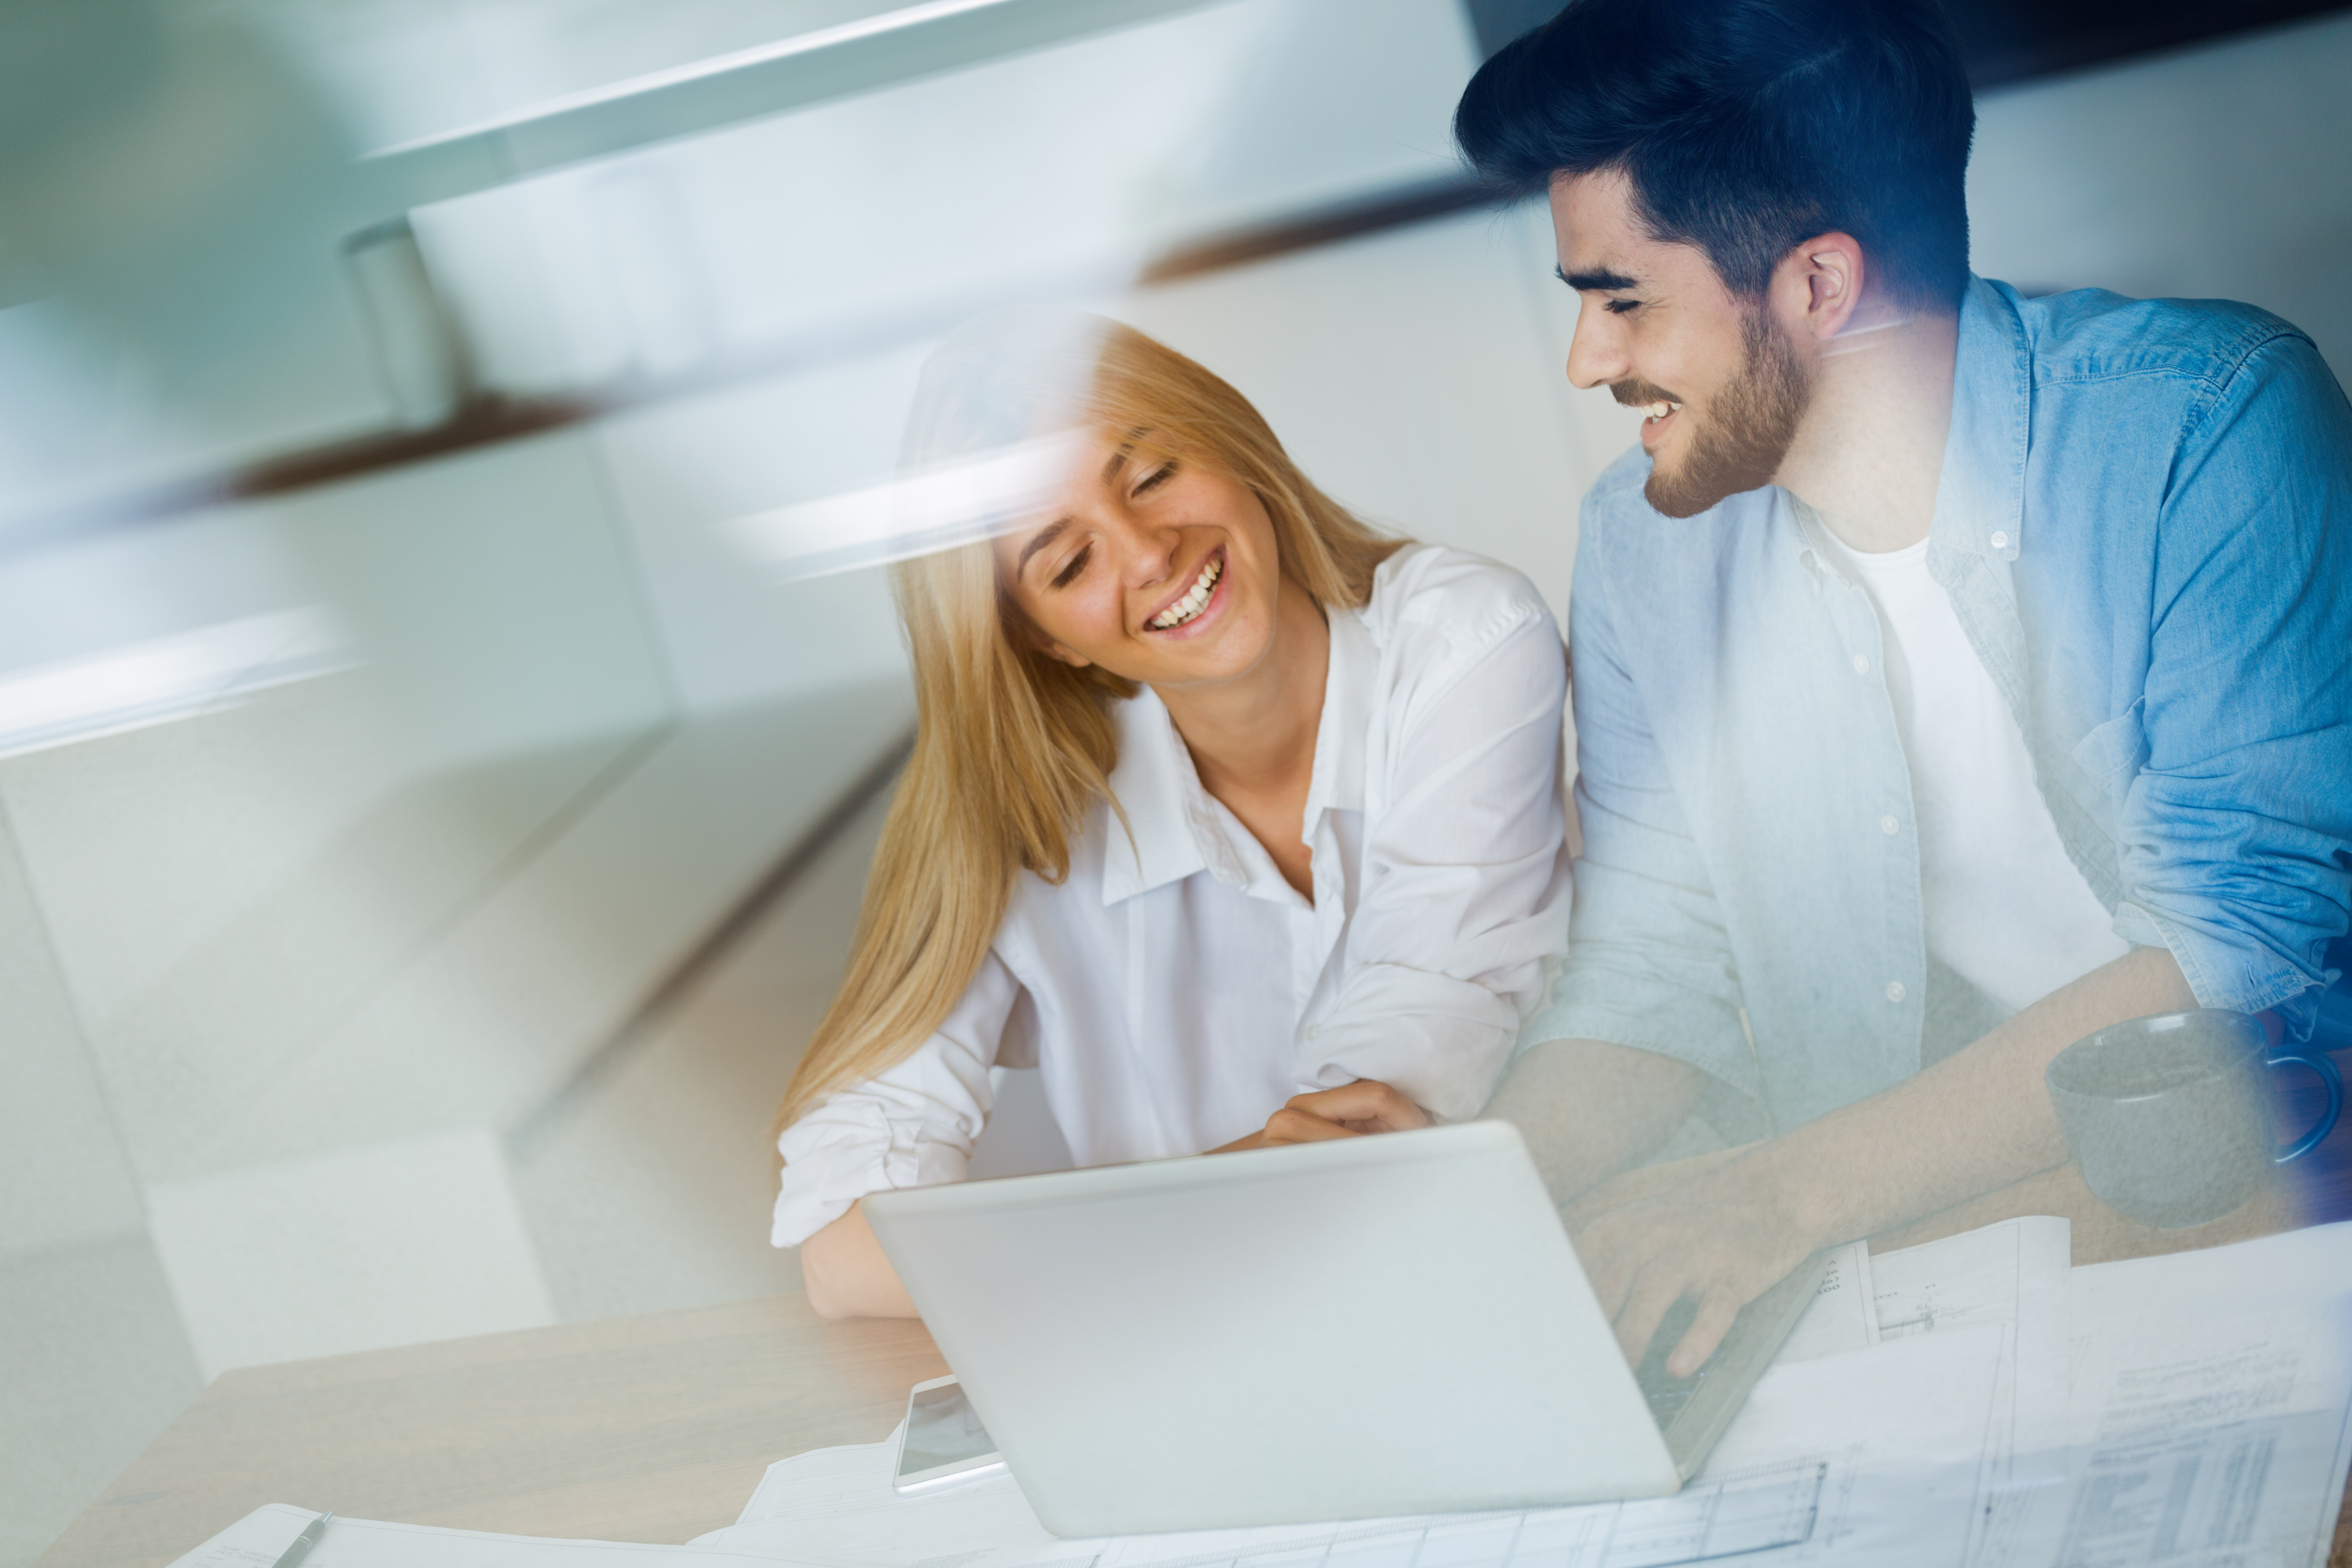 portrait-of-a-cheerful-young-couple-calculating-th-SUDNPRM